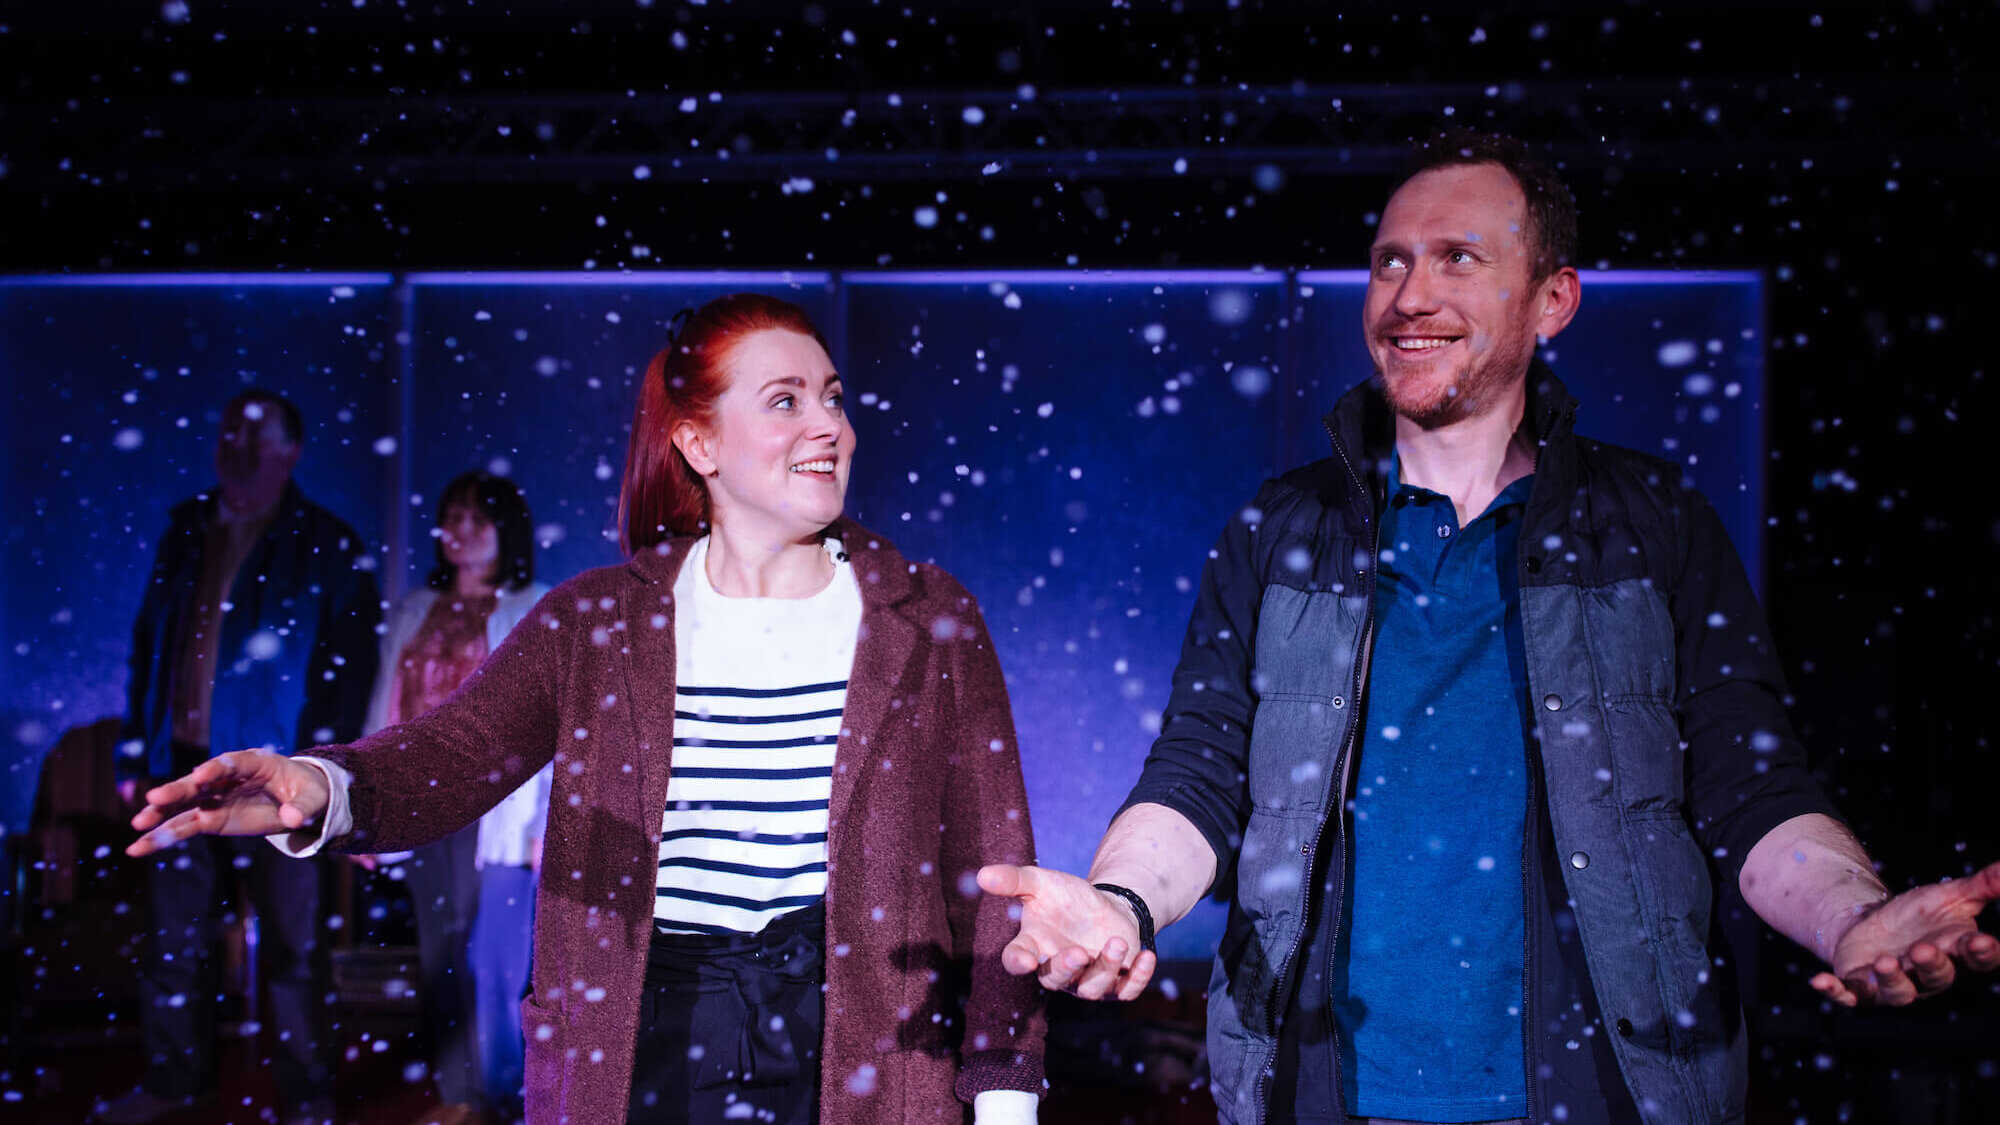 Fibres Film production image of Suzanne Magowan and Ali Craig standing with their arms outstretched as snow fall around them